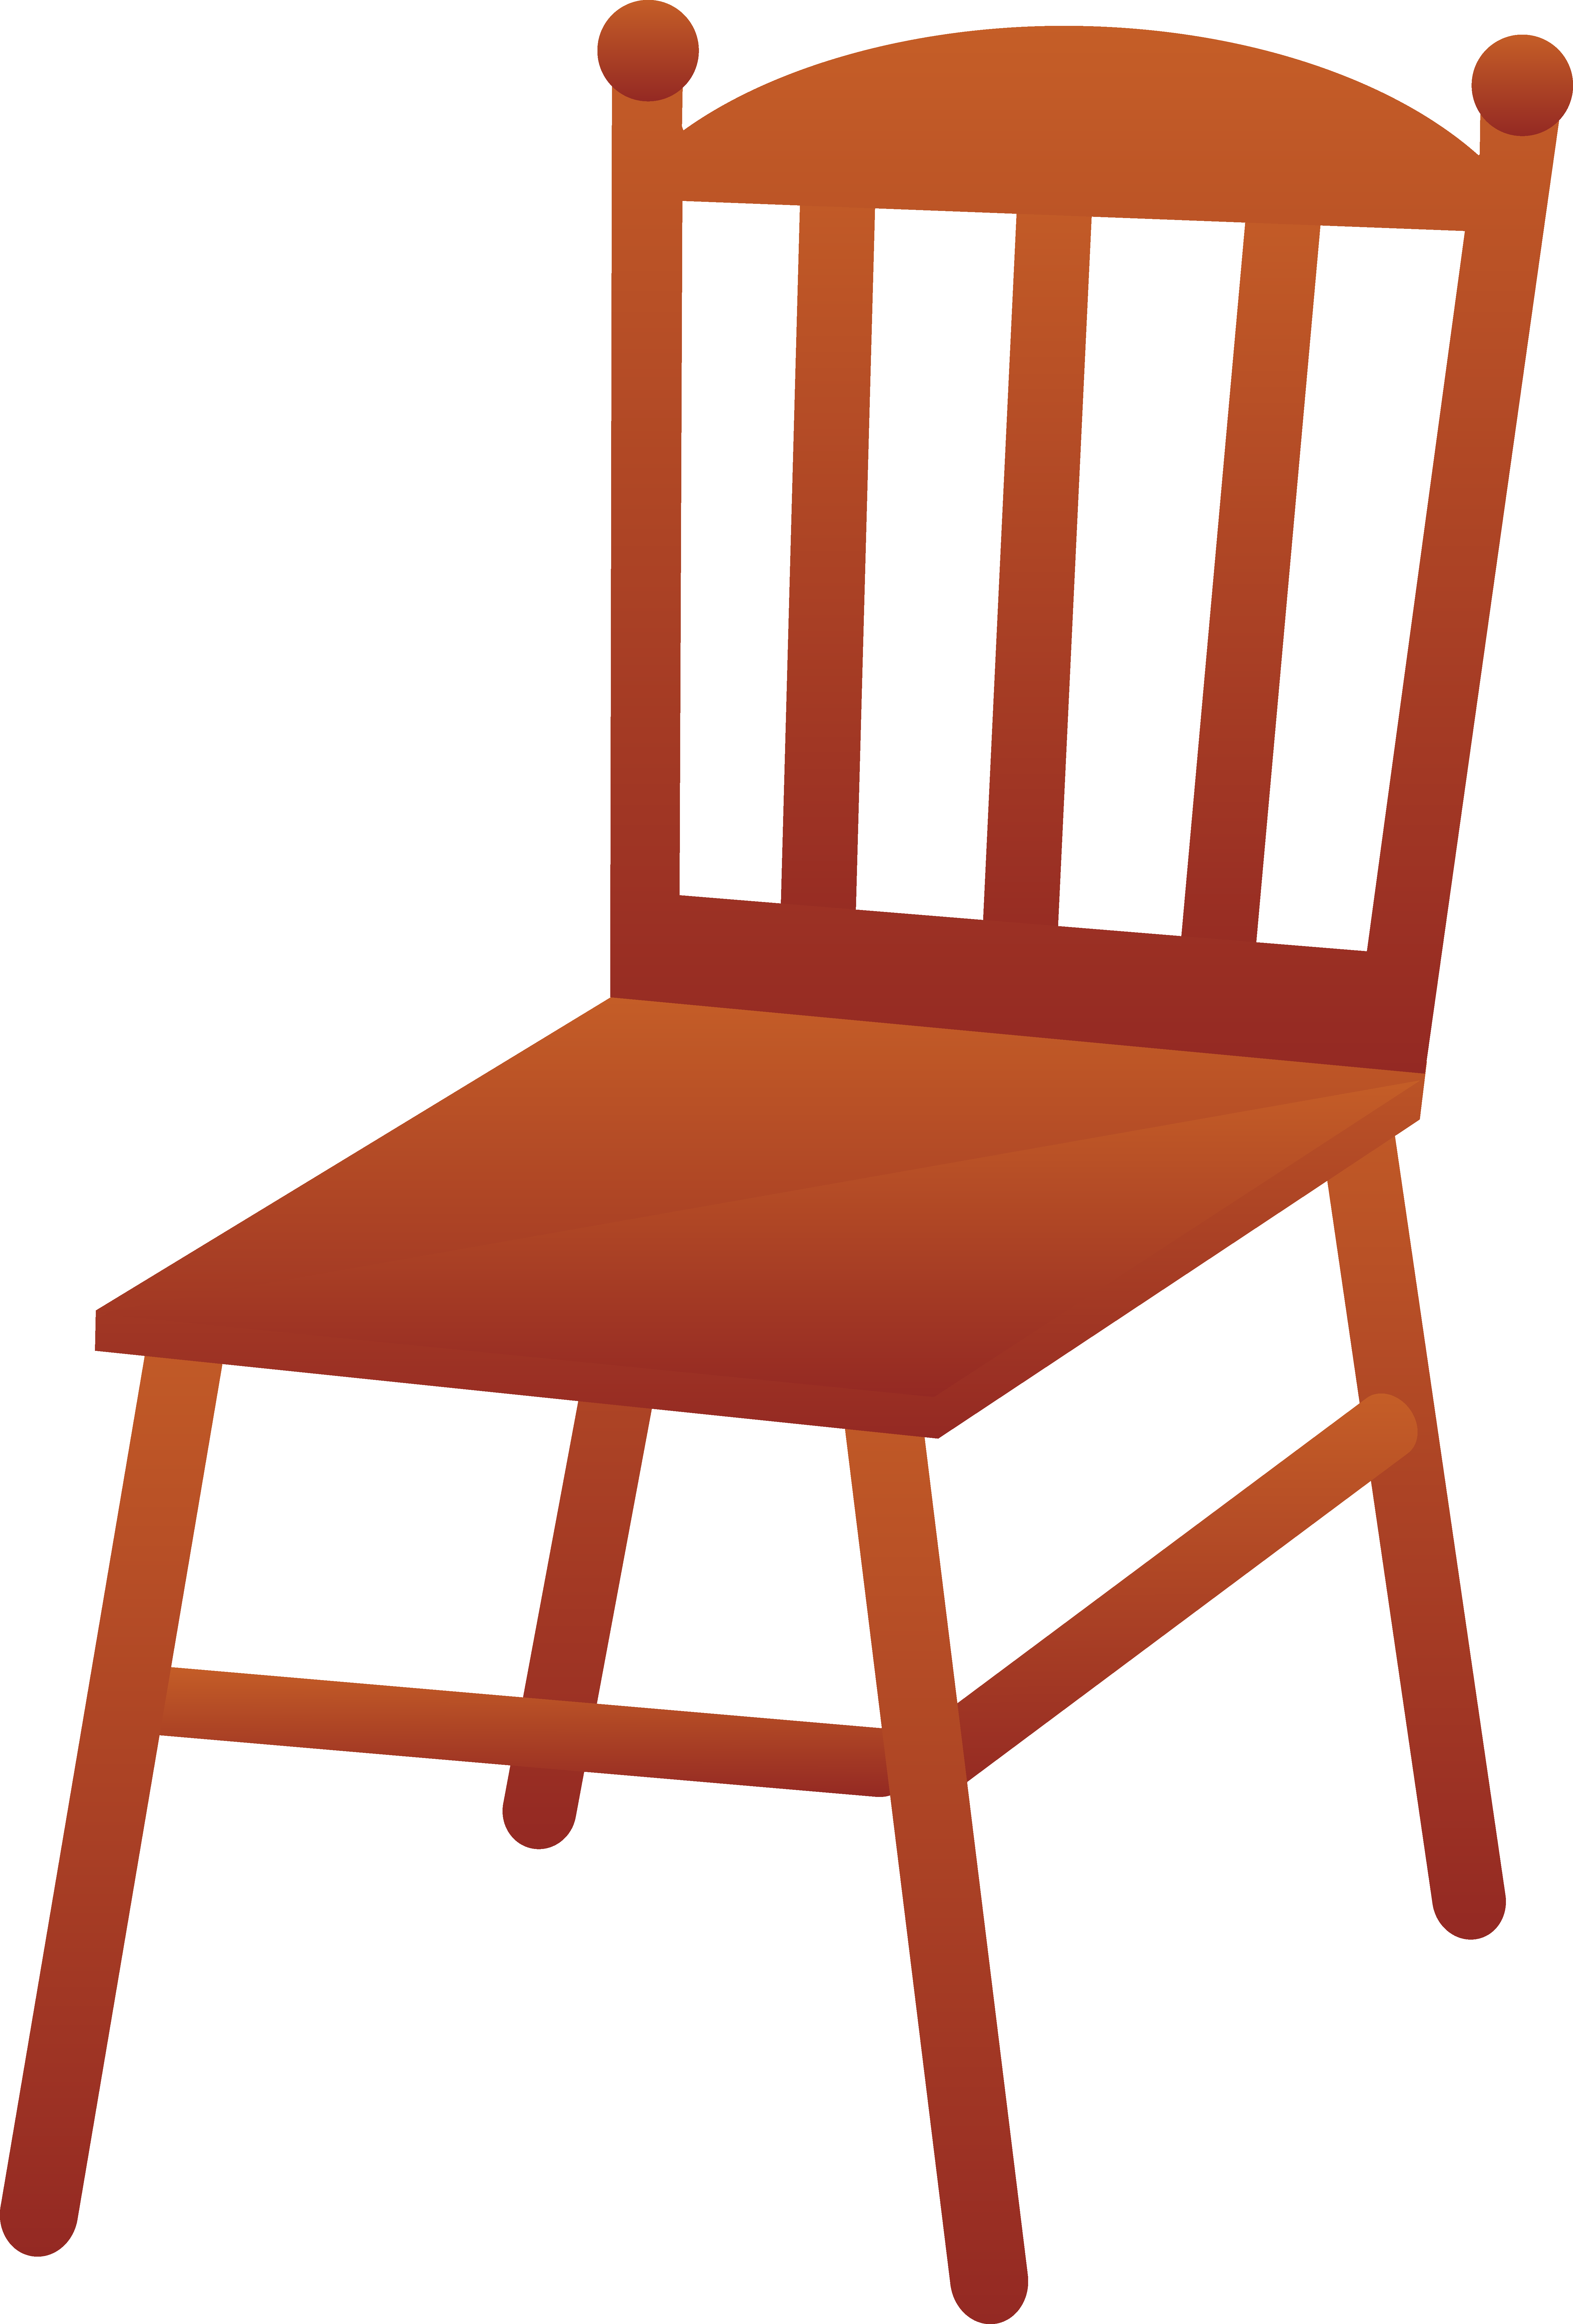 chair clipart black and white